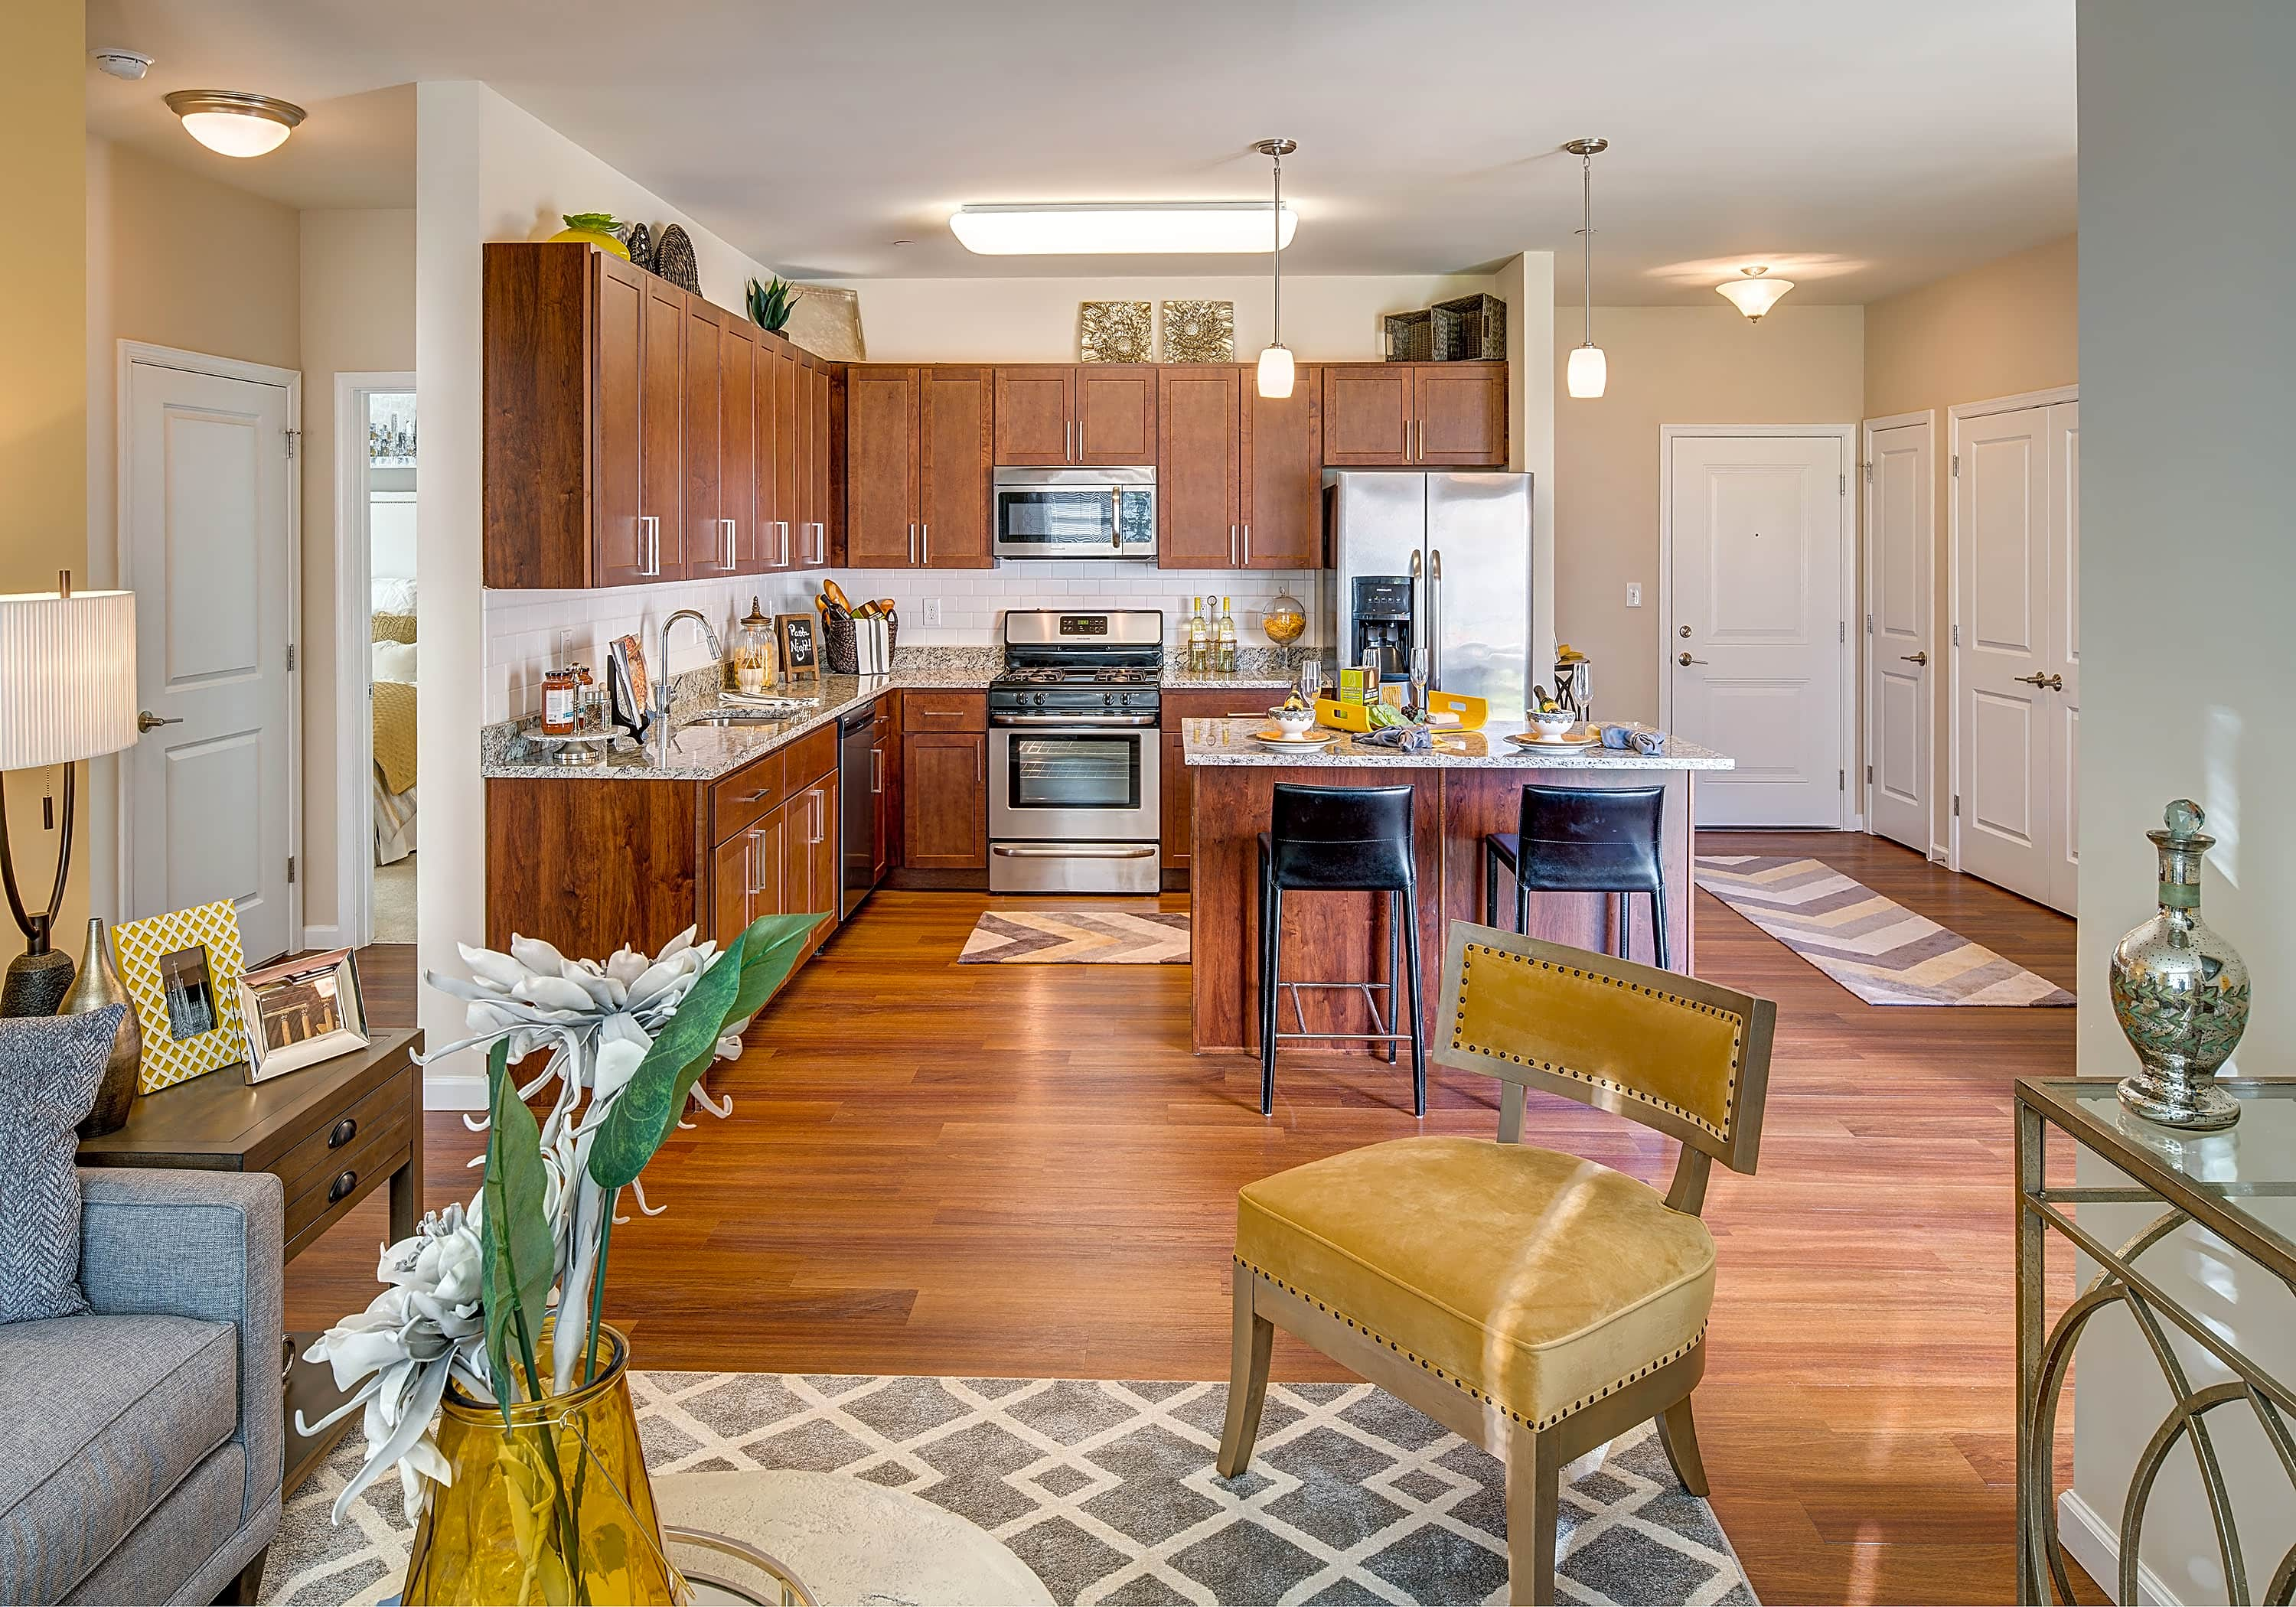 Apartments Near Wesleyan Alterra | Rocky Hill Apartments for Wesleyan University Students in Middletown, CT